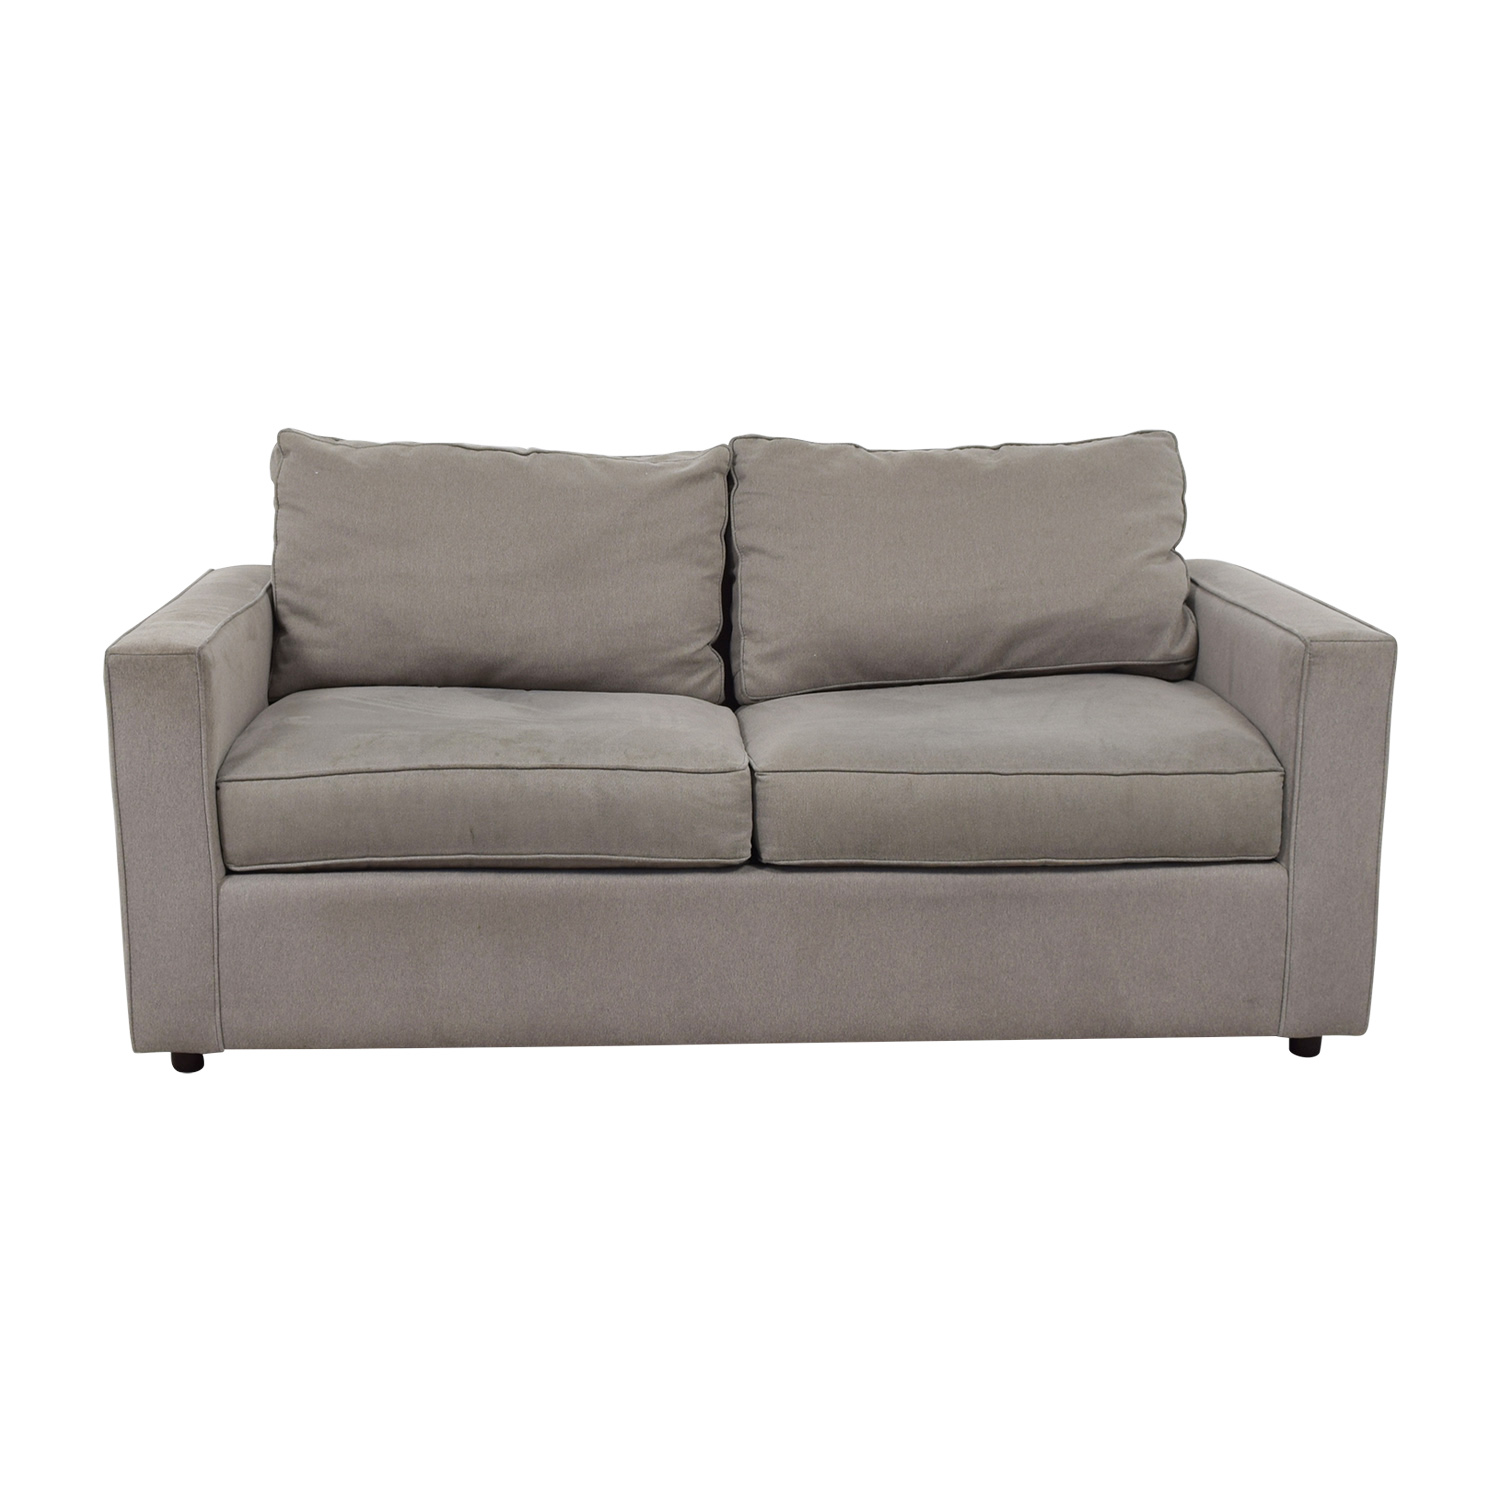 Room & Board Room & Board York Grey Two-Cushion Sofa on sale